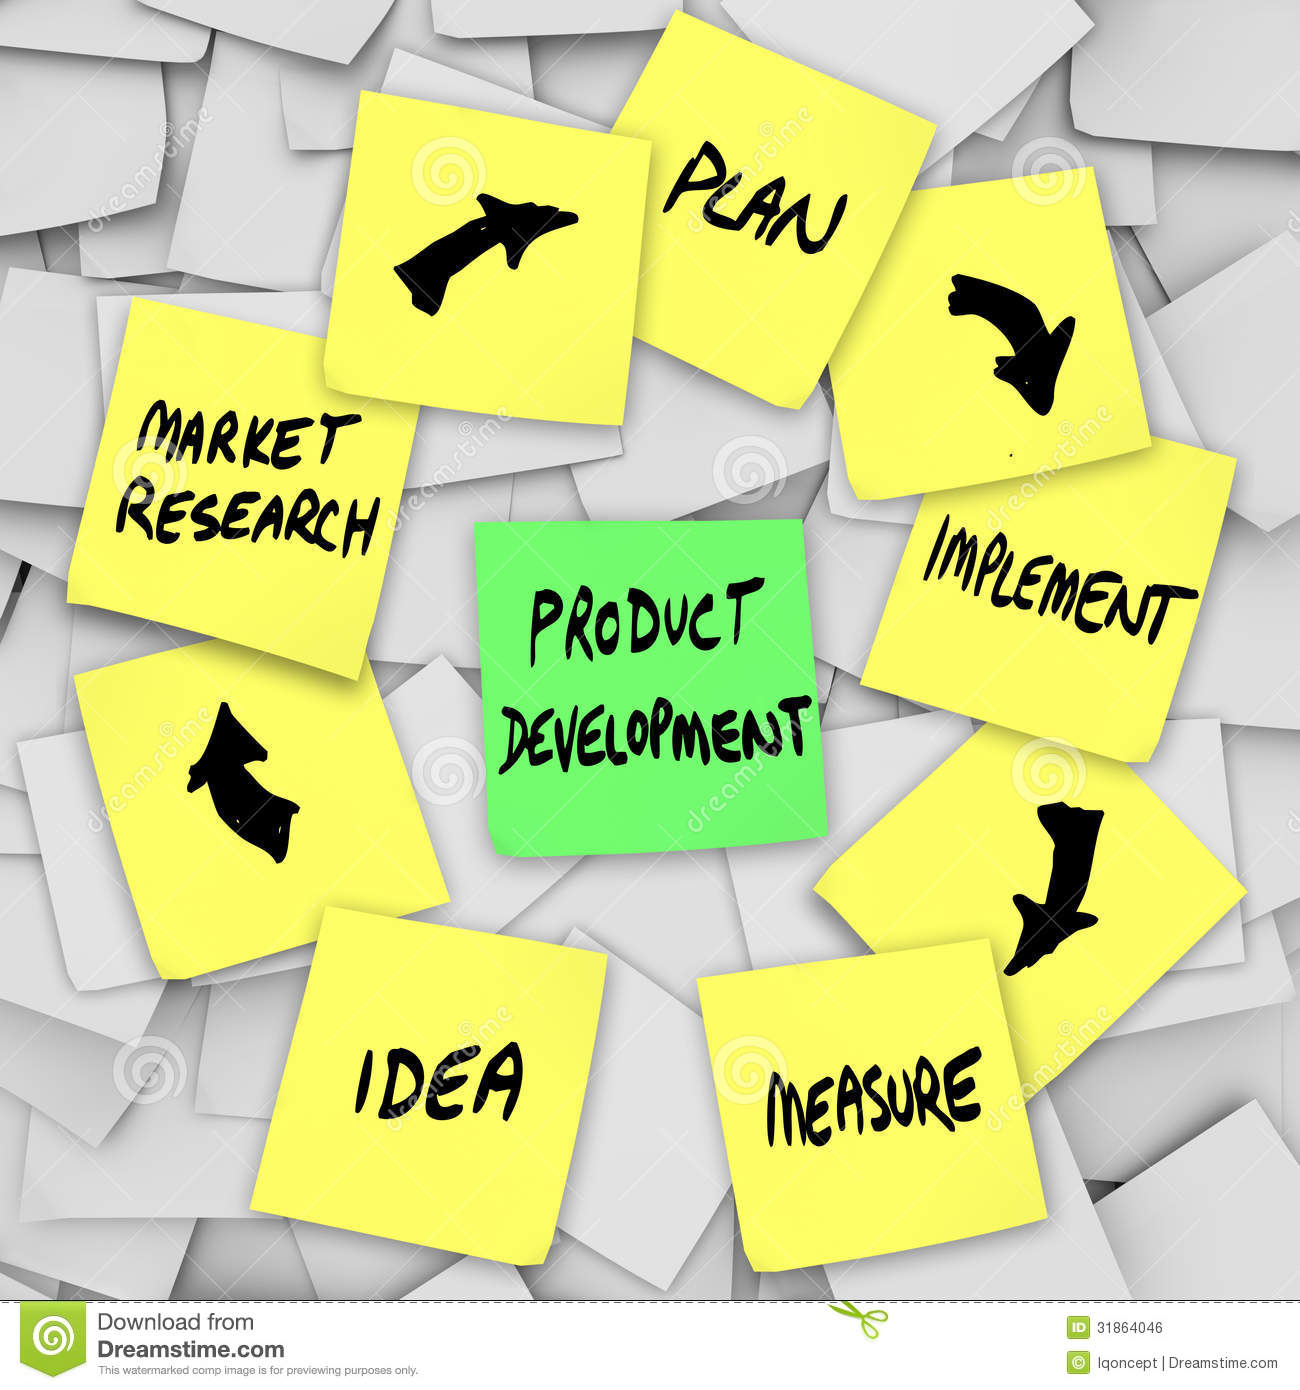 Product clipart Product Development Icon Development Sticky Clipground Plan Product